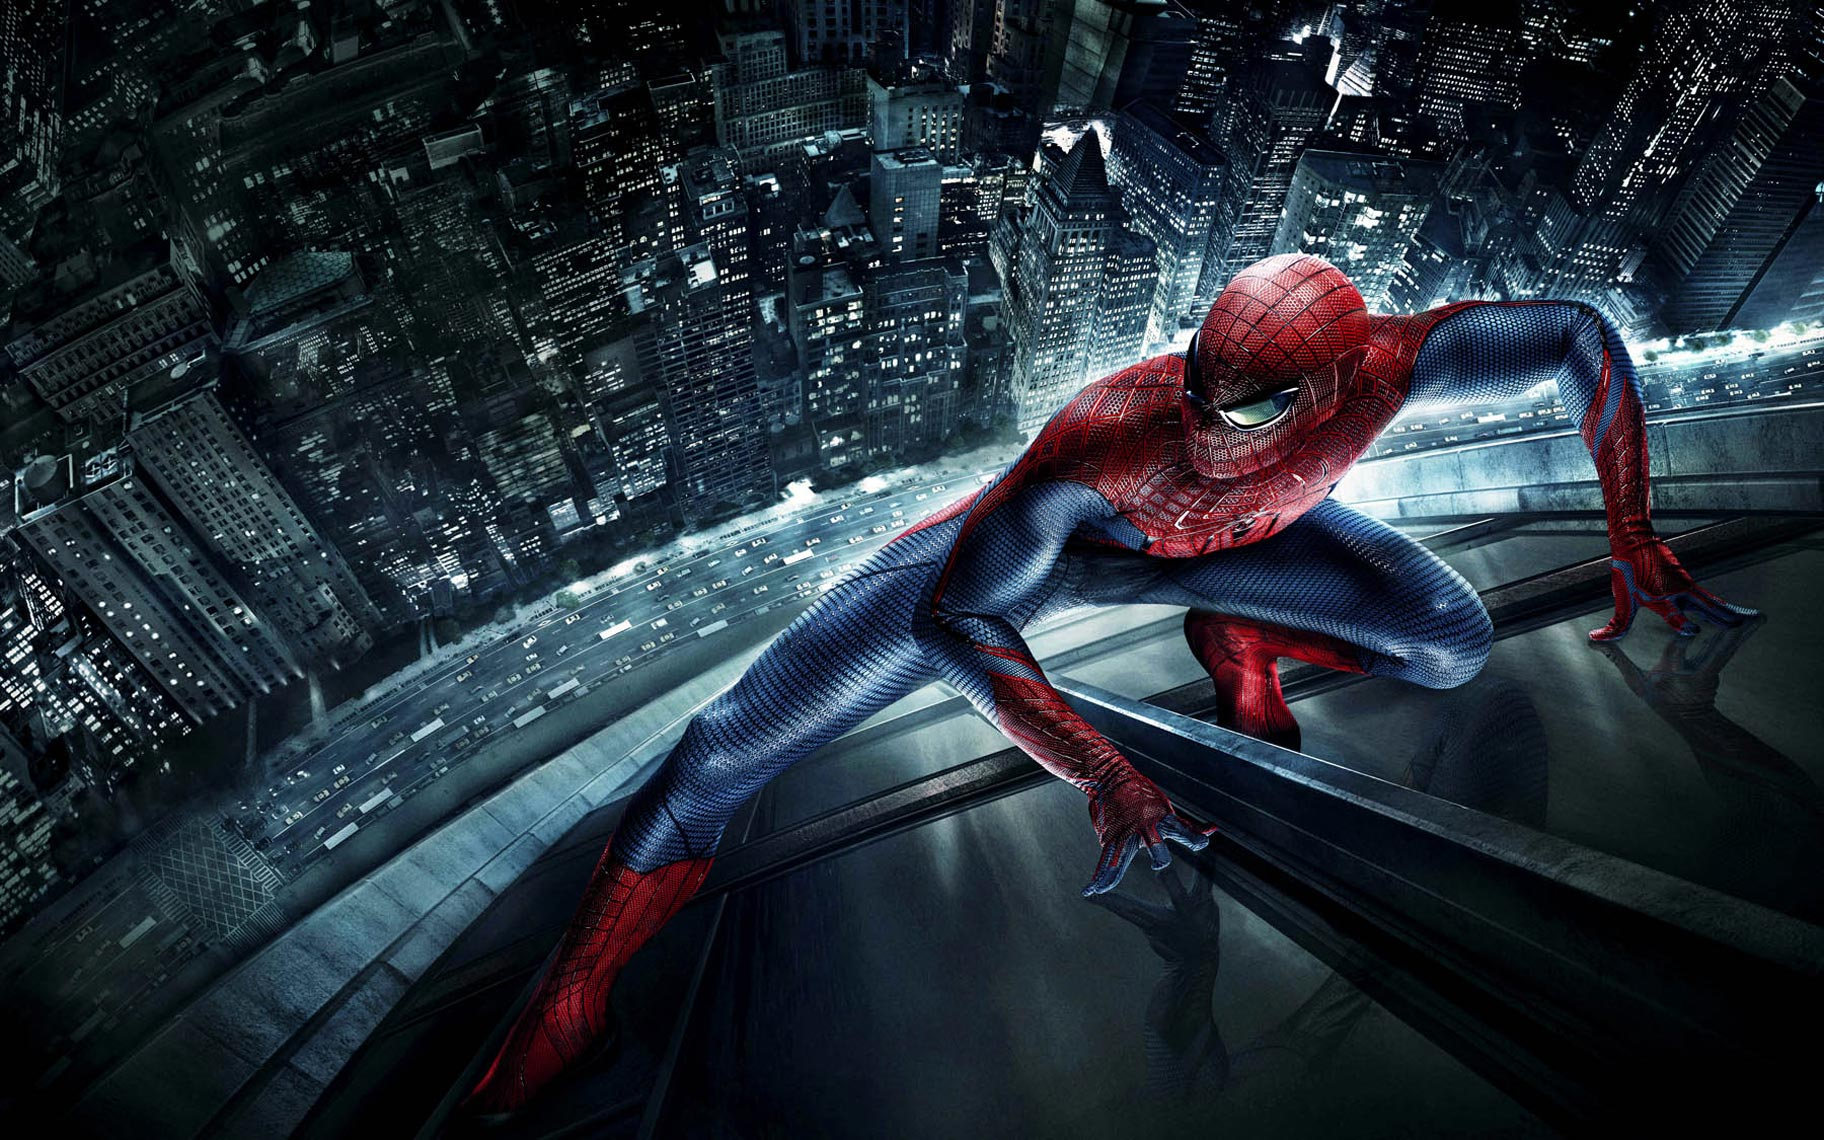 Amazing Spiderman Movie poster cityscapes photo by Monte Isom